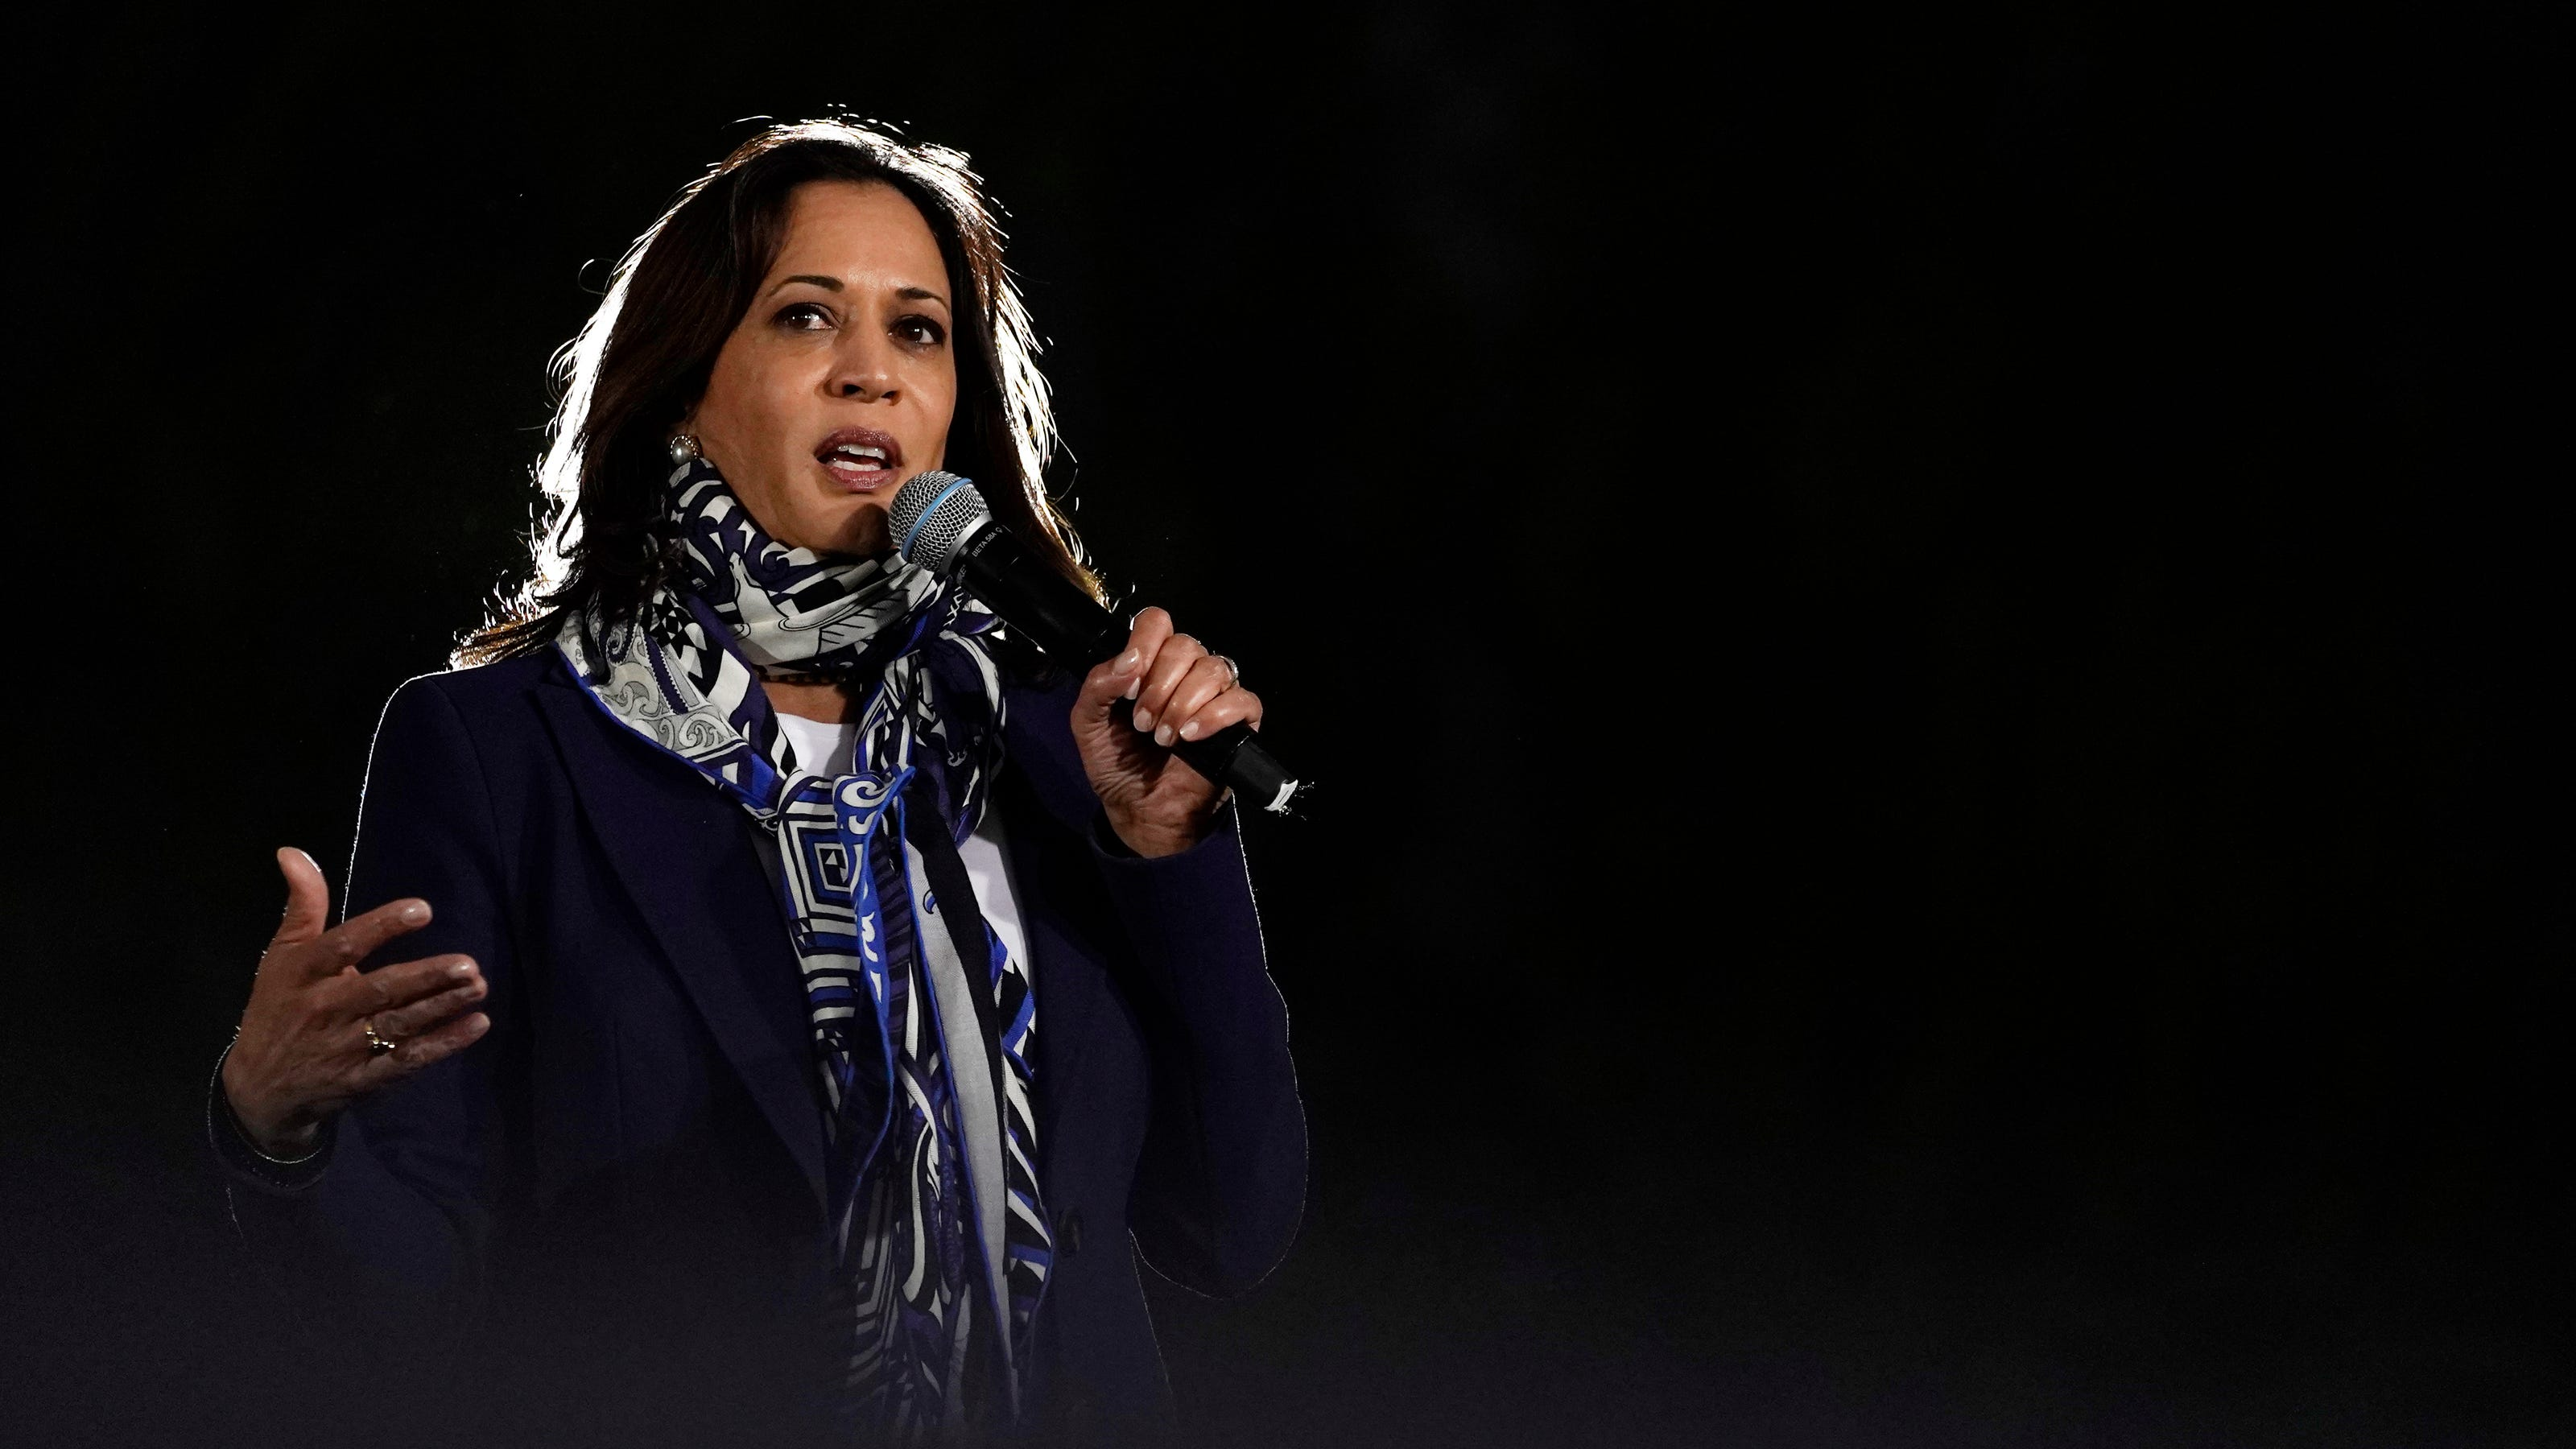 www.usatoday.com: Kamala Harris' VP win marks 'powerful, emotional' moment for African American and South Asian American women